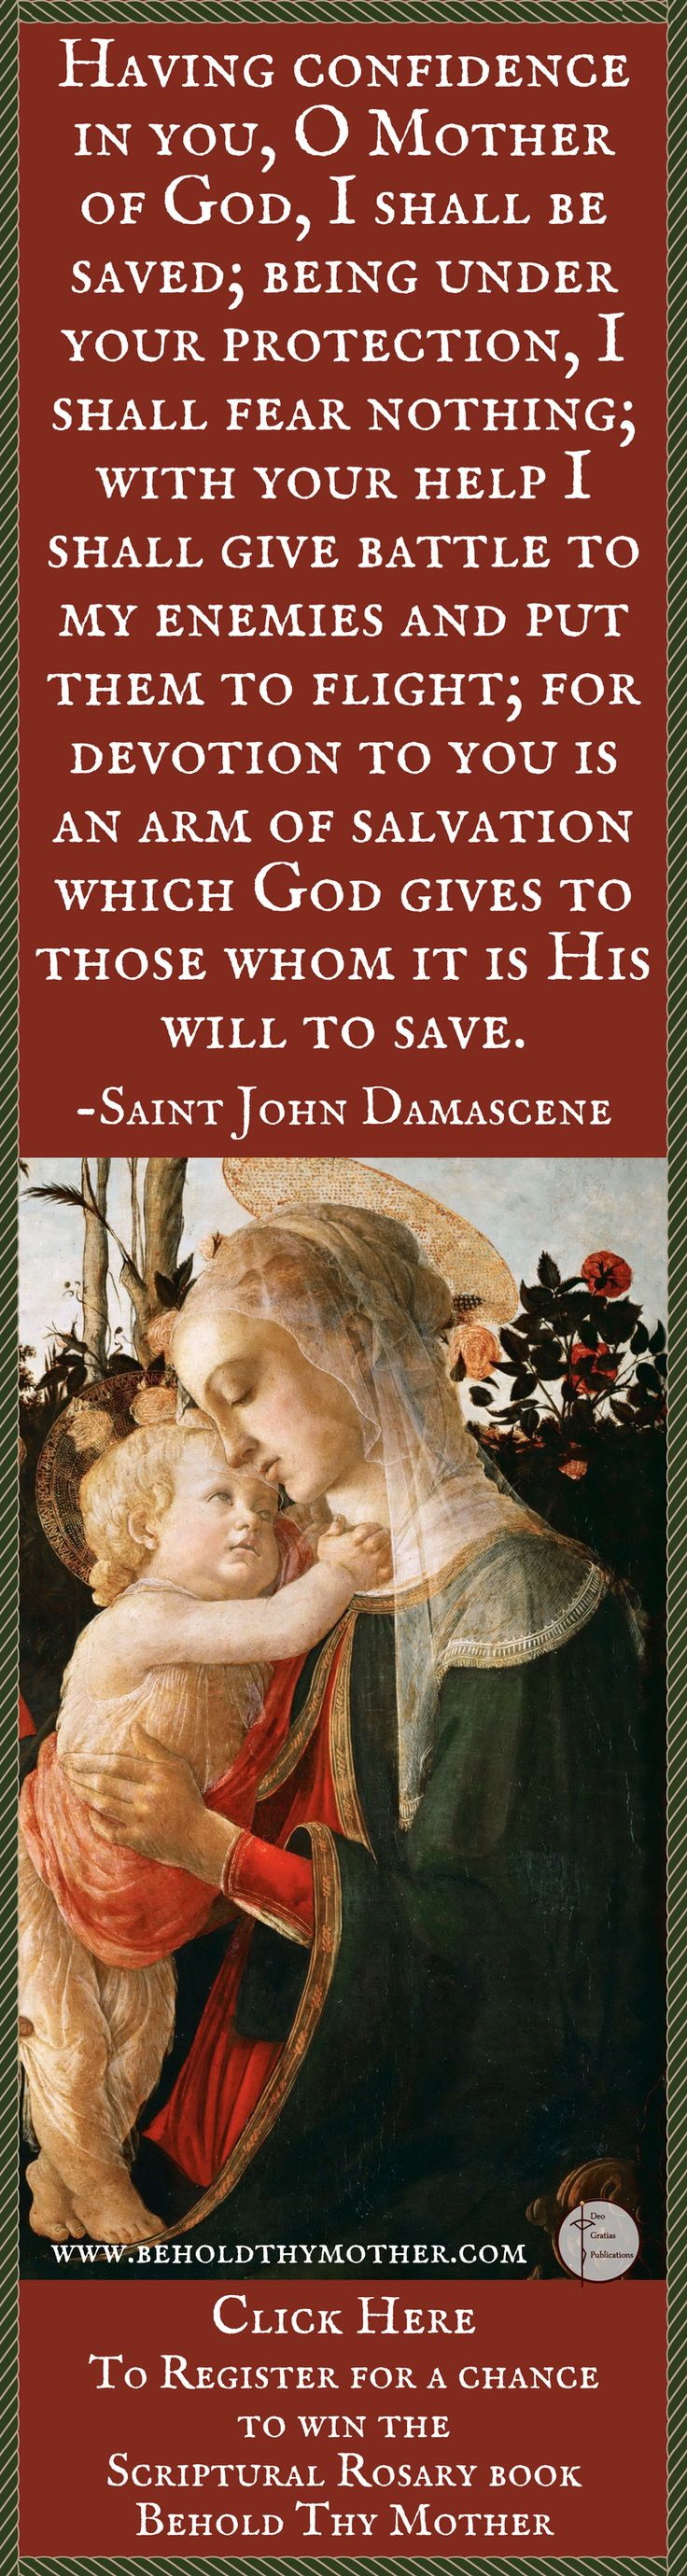 "Sandro Botticelli masterpiece with Saint John Damascene quote. Register for a chance to win a copy of the Scriptural Rosary Book ""Behold Thy Mother"" an English/Latin Scriptural Rosary."